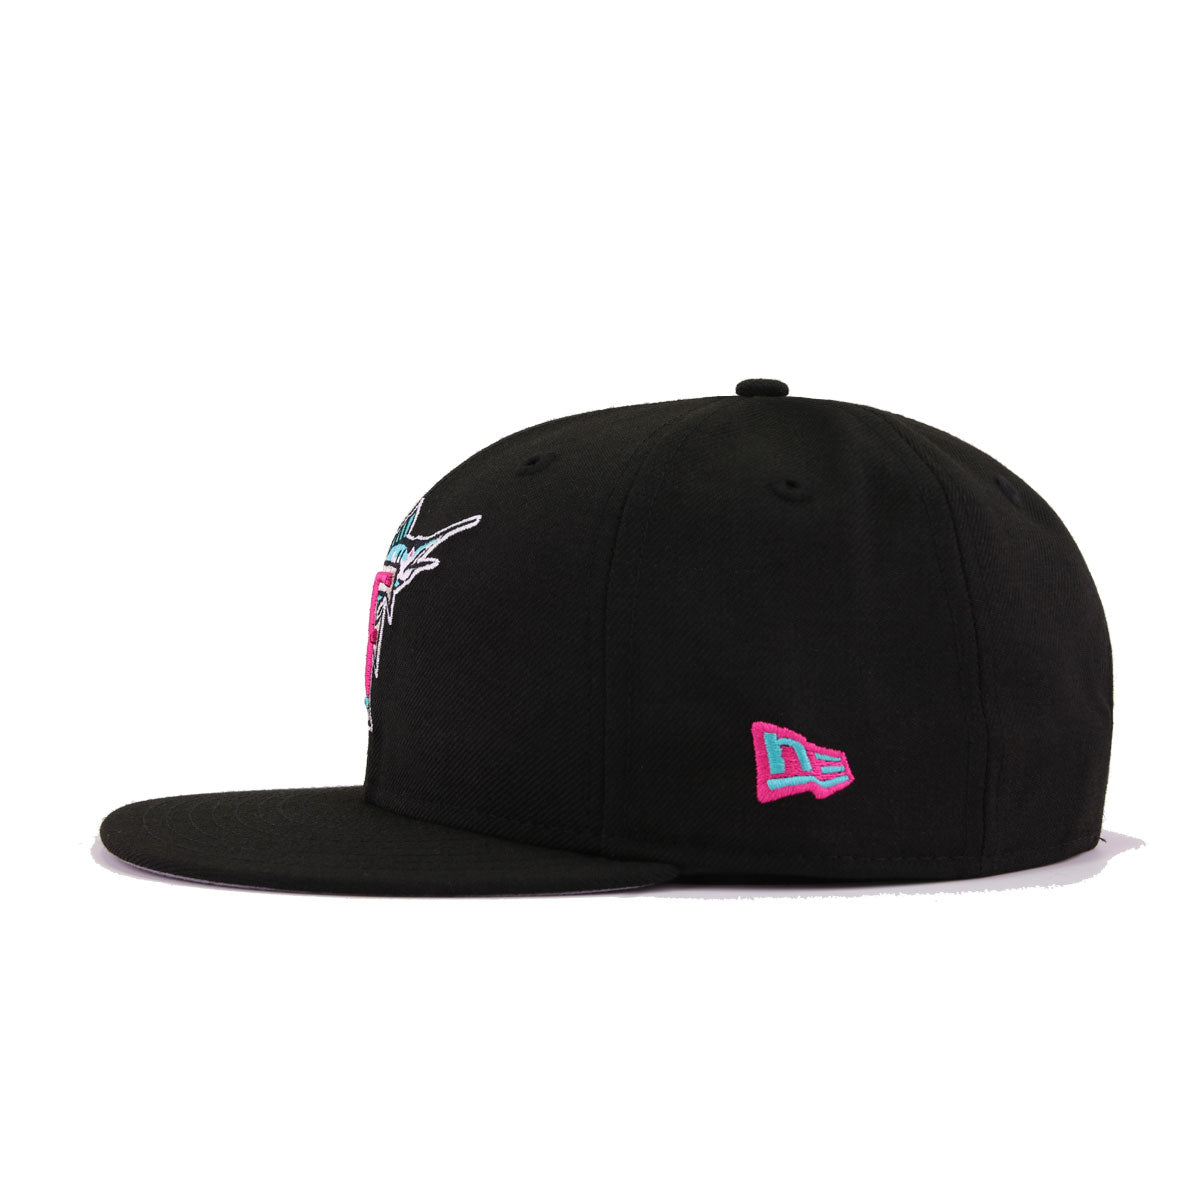 Florida Marlins Black Aqua Beet Root Purple 1993 Inaugural Season New Era 9Fifty Snapback